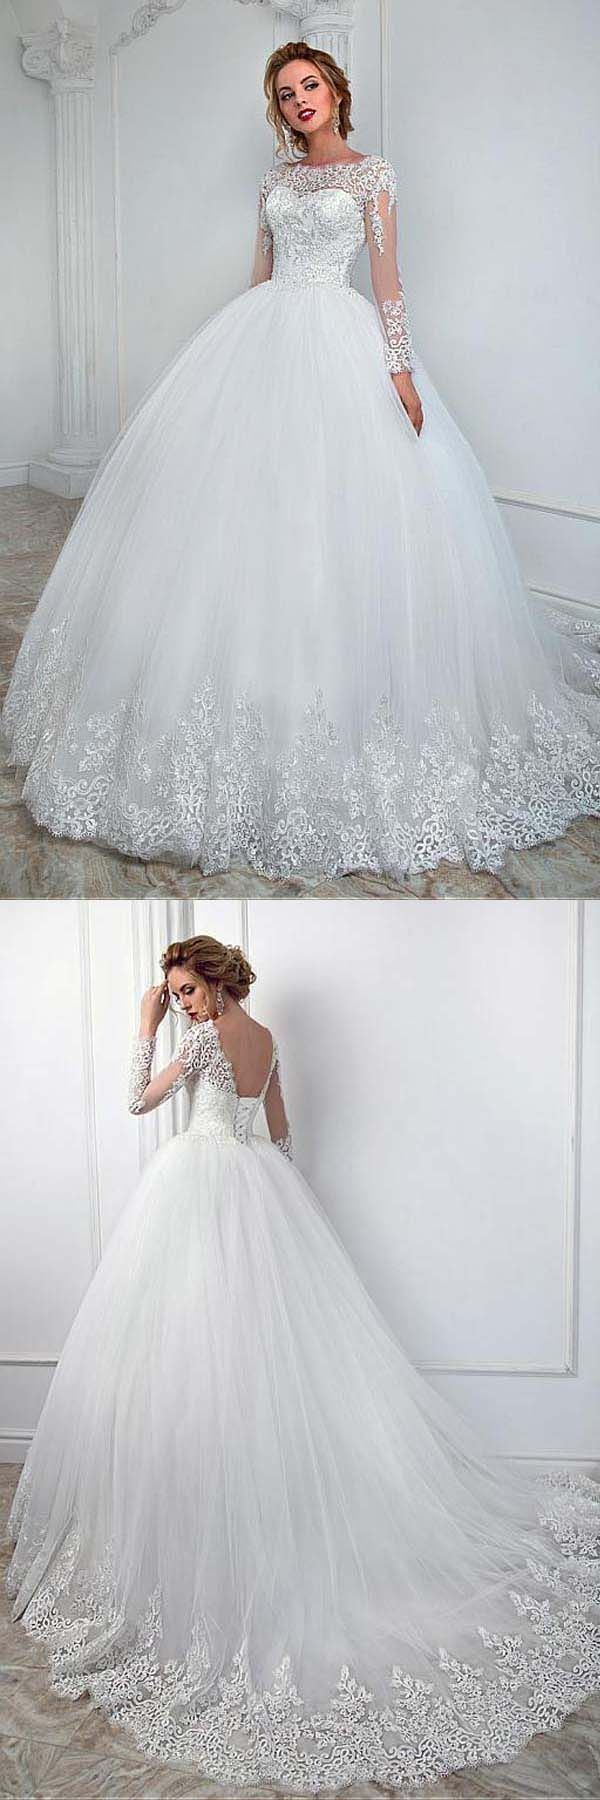 Love This Elegant Lace Bridal Ball Gown With Sleeves Helps Hide Flabby Arms And Creat Vestidos De Novia Vestidos De Novia Princesa Vestidos De Novia Juveniles